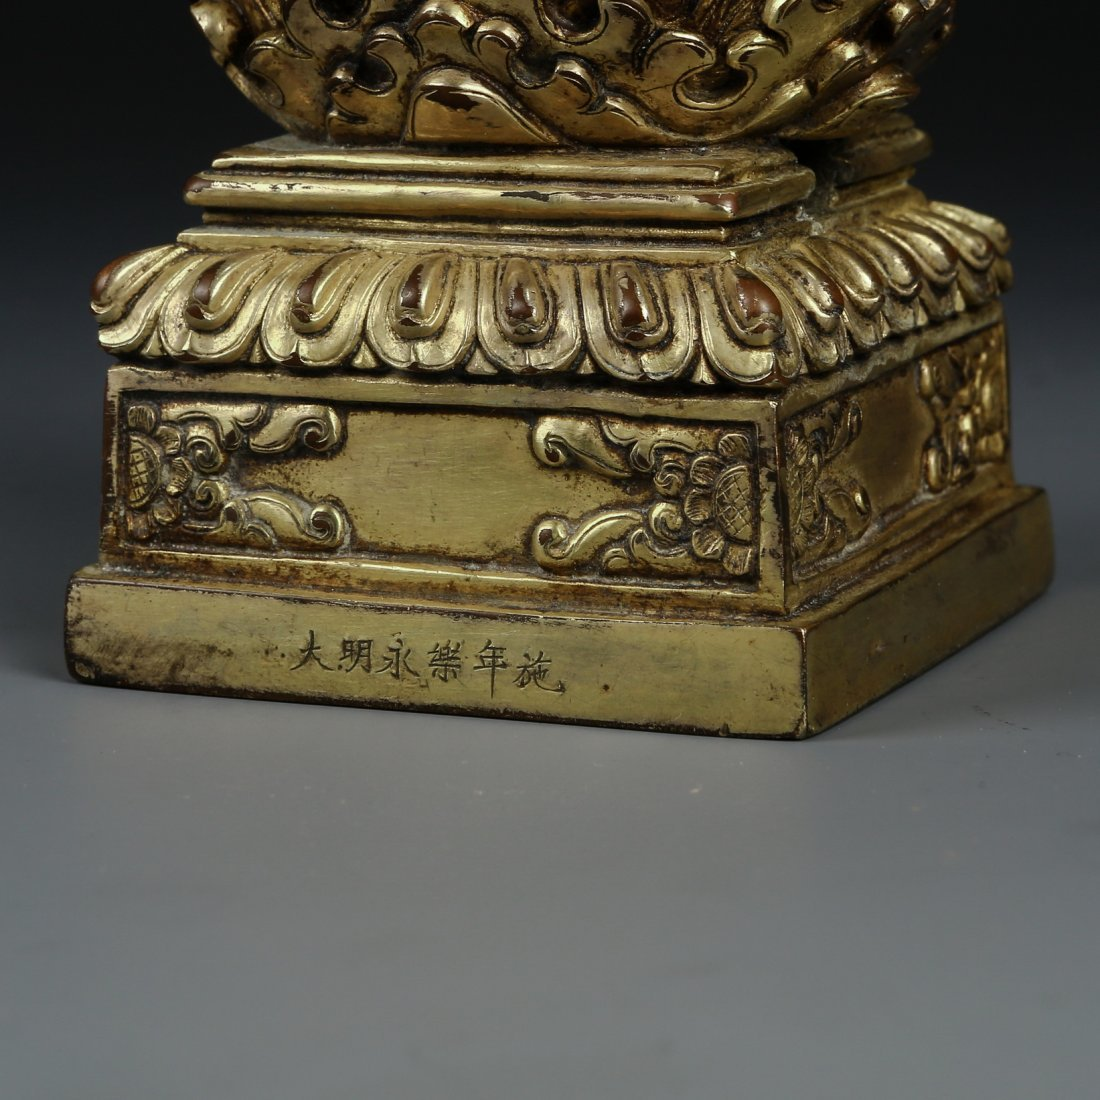 Very Ornate Gilt Bronze Square Seal with Mark - 3